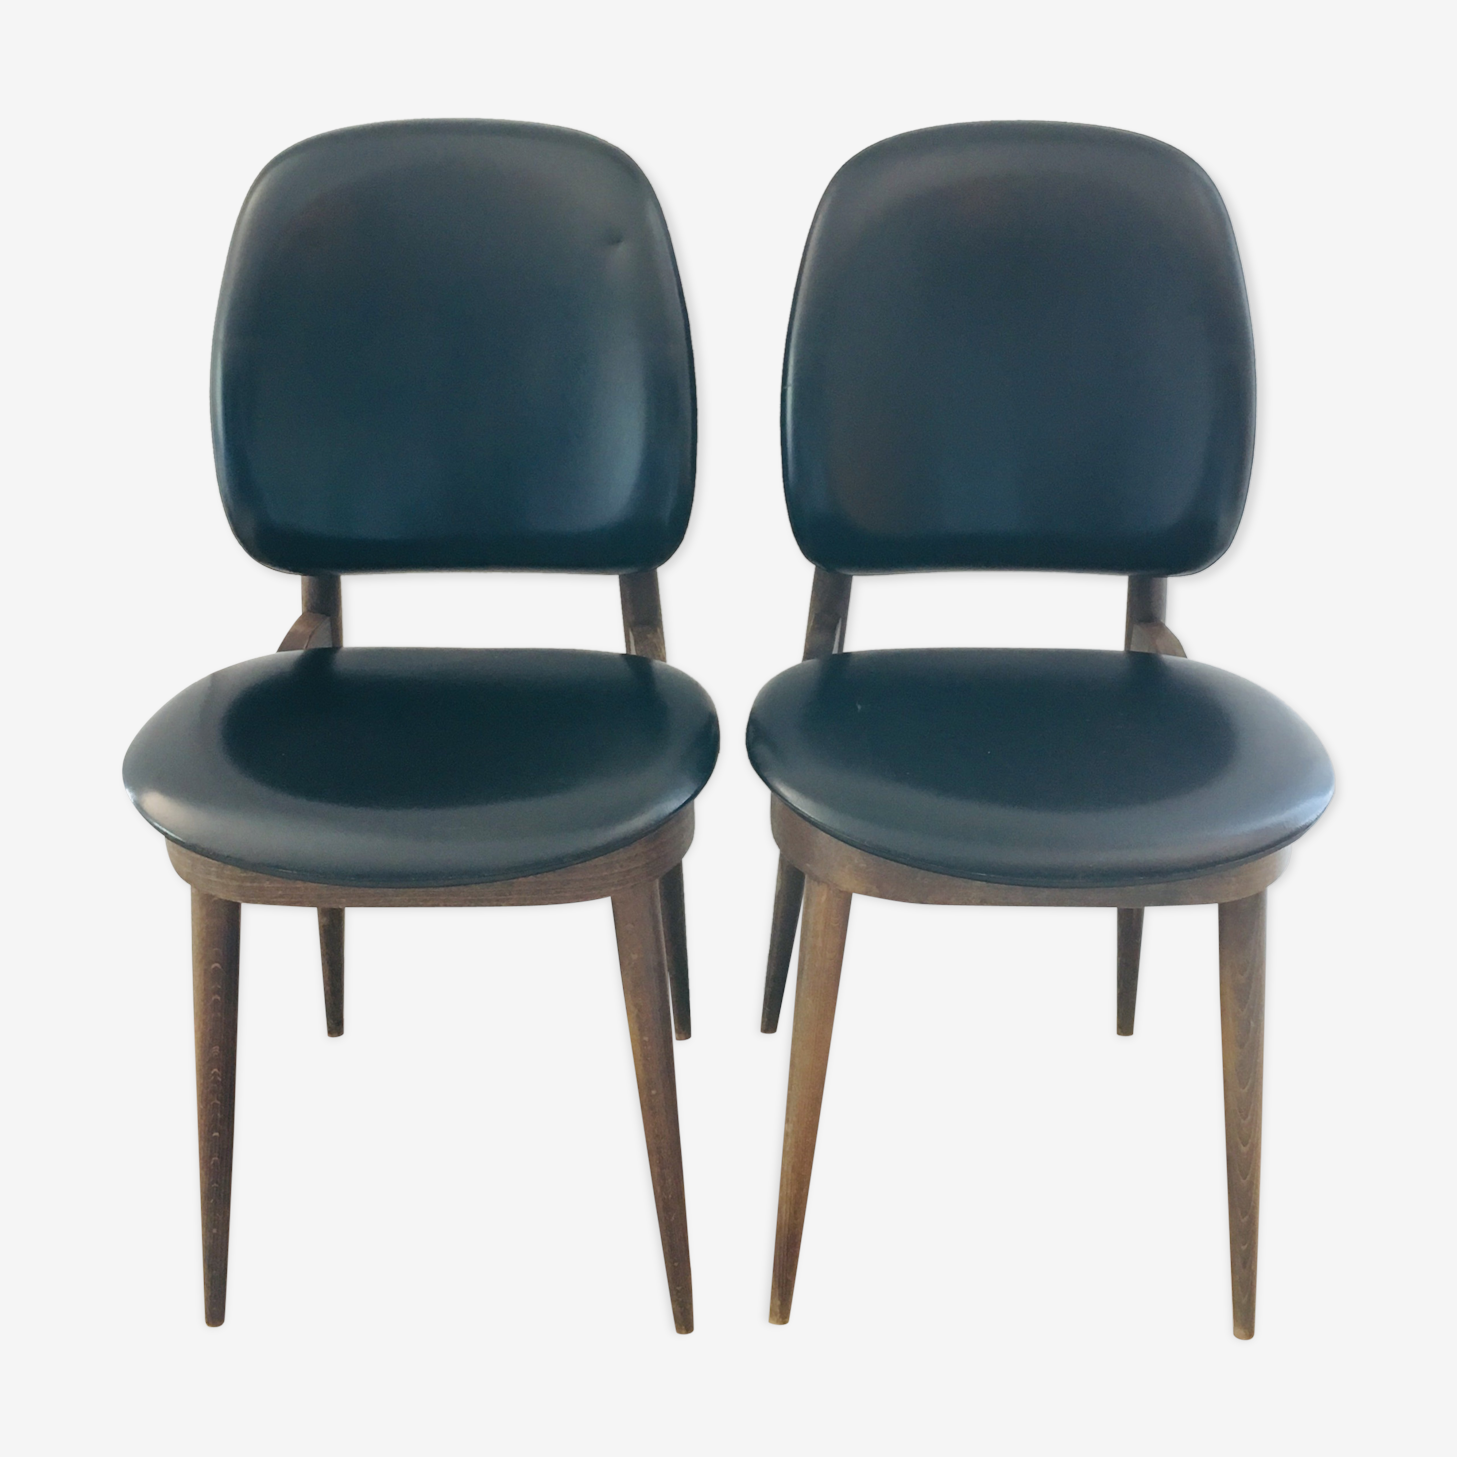 Chairs Baumann Pegasus